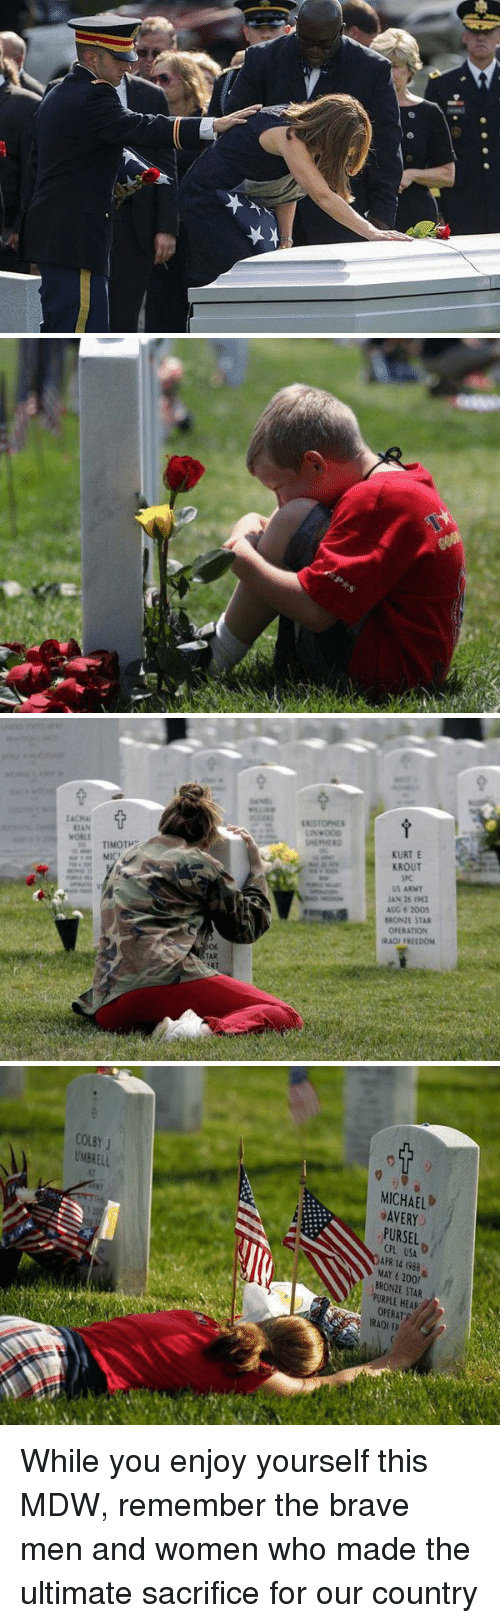 brony: TIMOTP  TAR  KURT E  KROUT  SRC  US ARMY  JAN 16  AUG 2005  BRONIE STAR  ORATION  RAO FREEDOM   COLEY  J  UMERELL  MICHAEL  AVERY  PURSEL  APR 14 1988  MAY 6 BRONTE STAR  PURPLE HEAR  OPERAT  IRA0l EP While you enjoy yourself this MDW, remember the brave men and women who made the ultimate sacrifice for our country